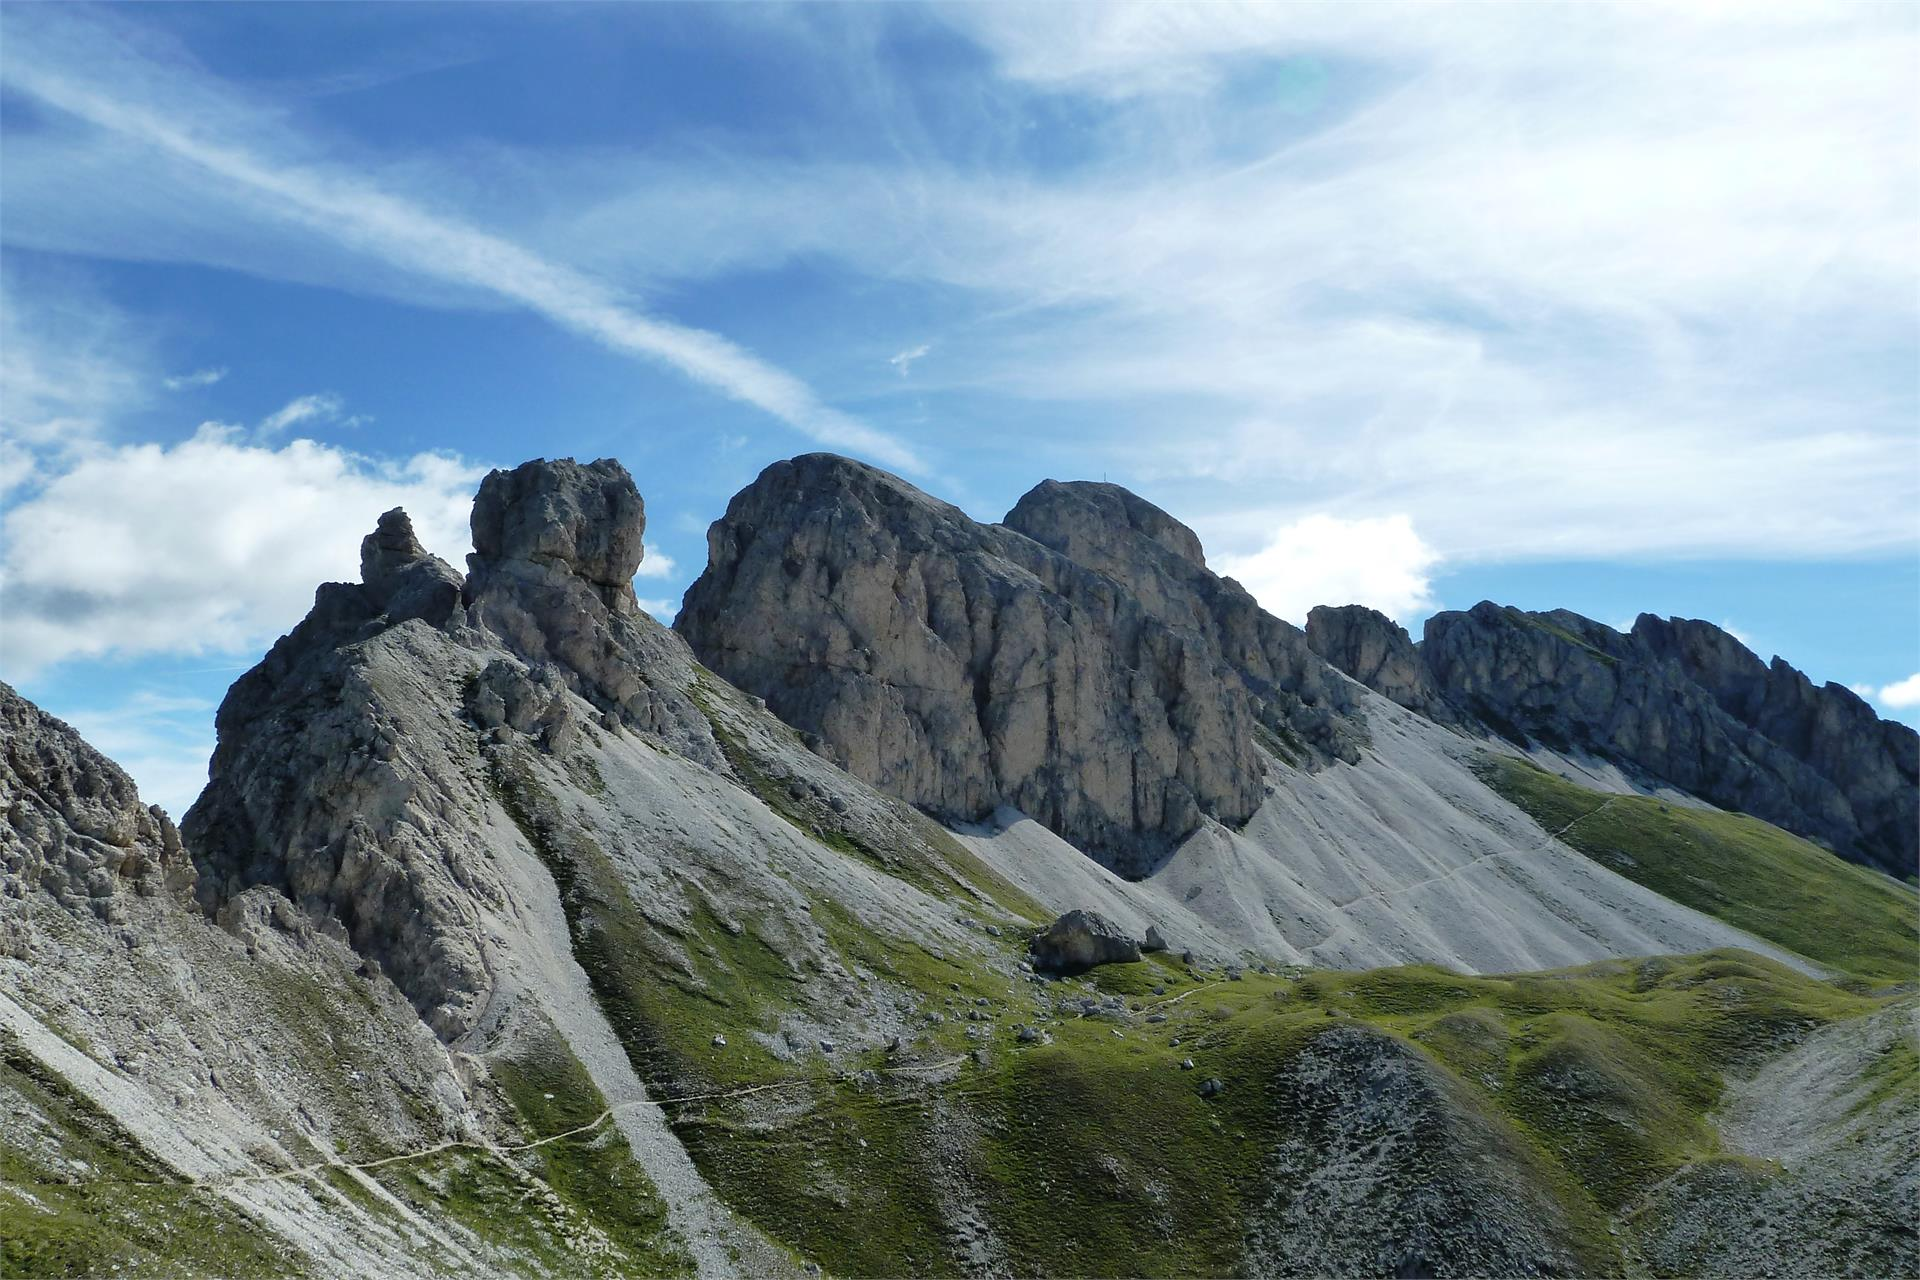 Trek to the dolomite peak of Monte Rovina